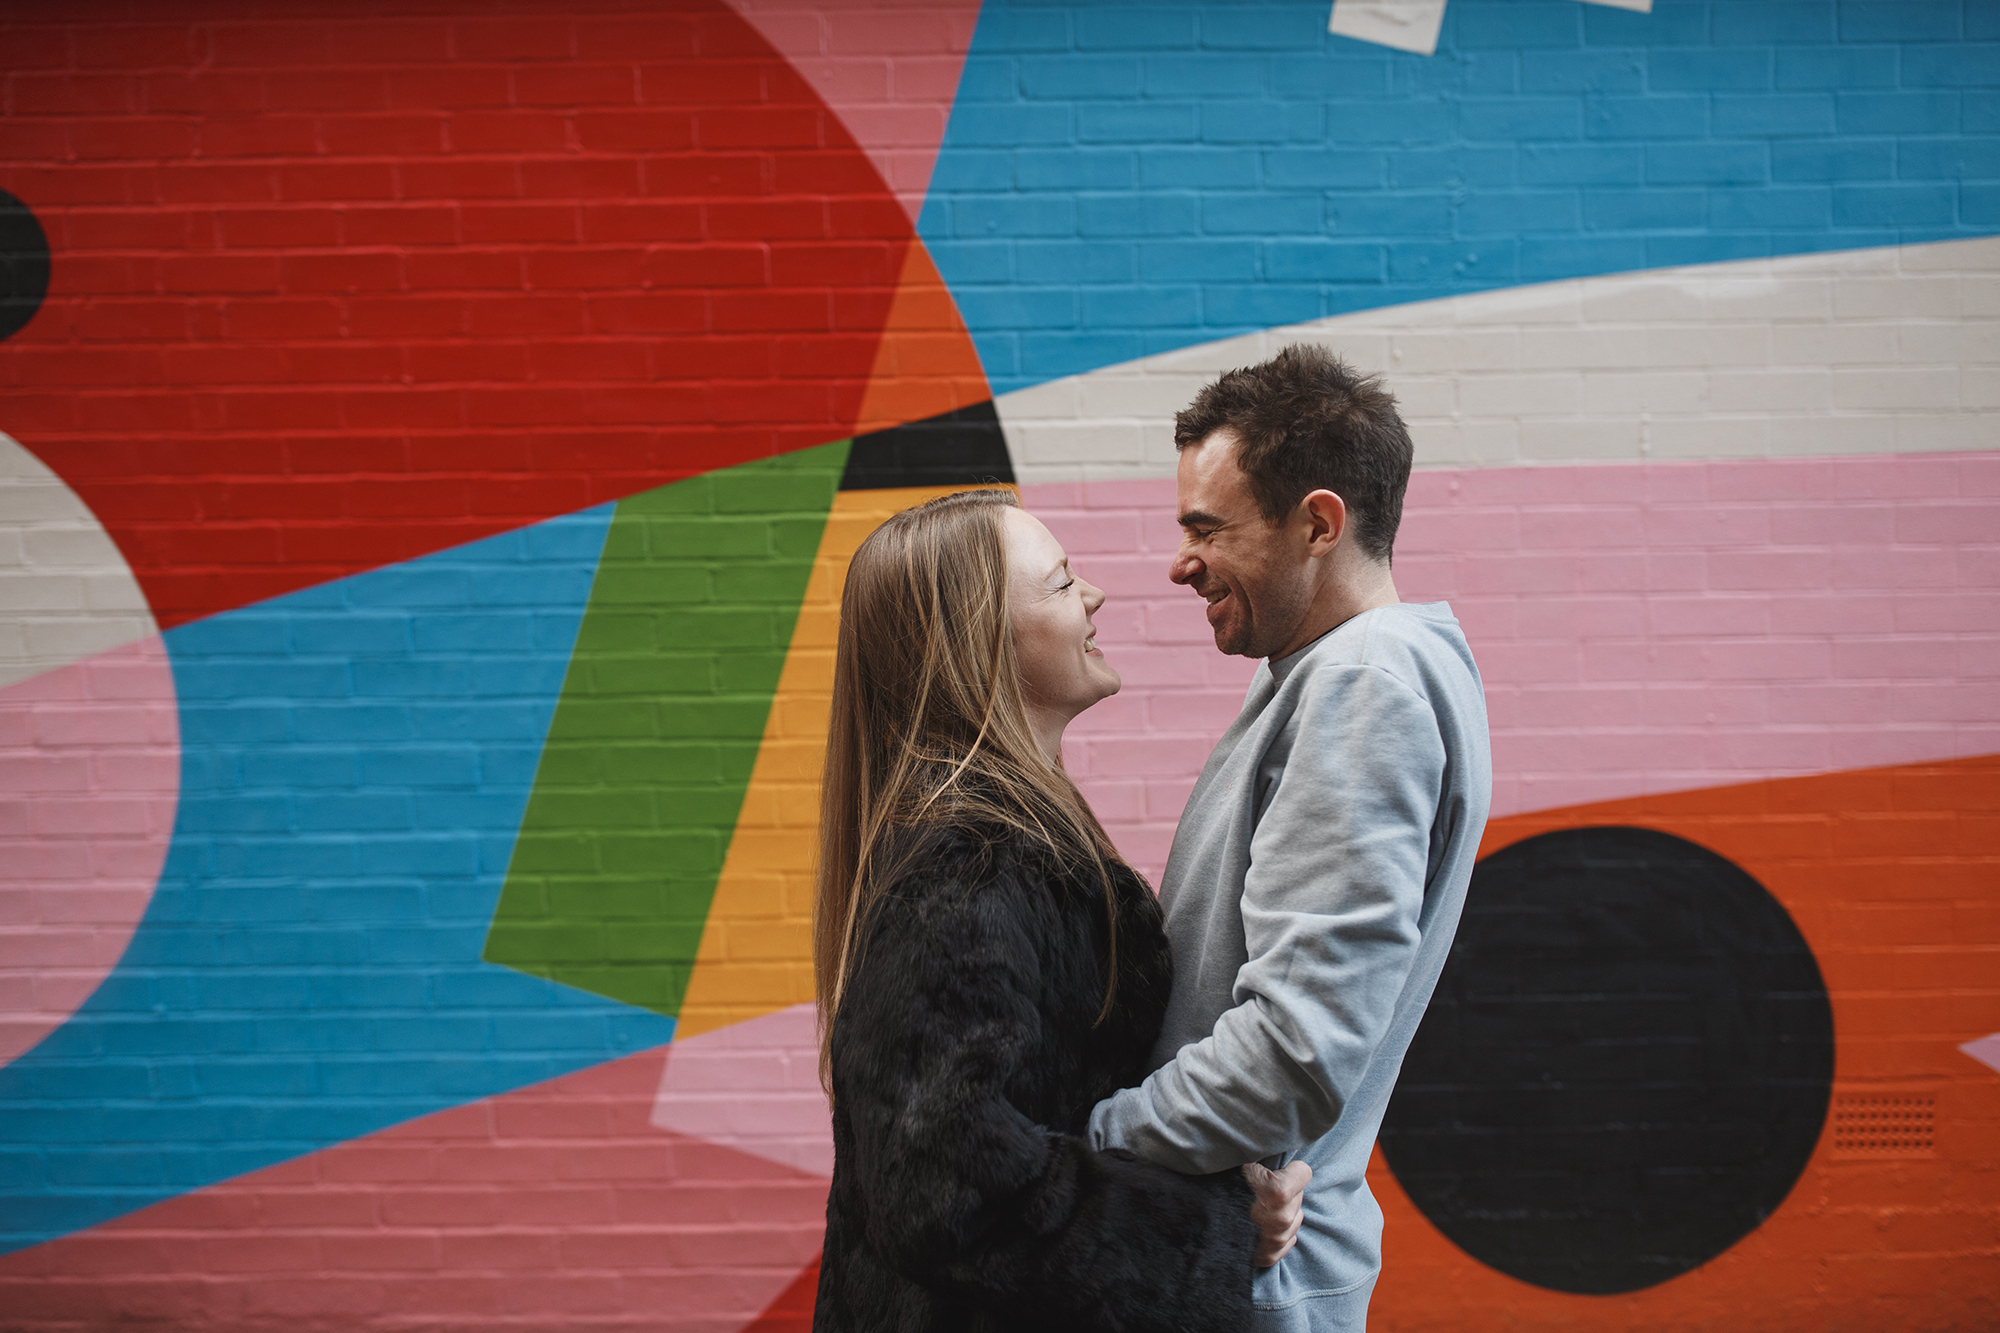 couple in love during Manchester shoot